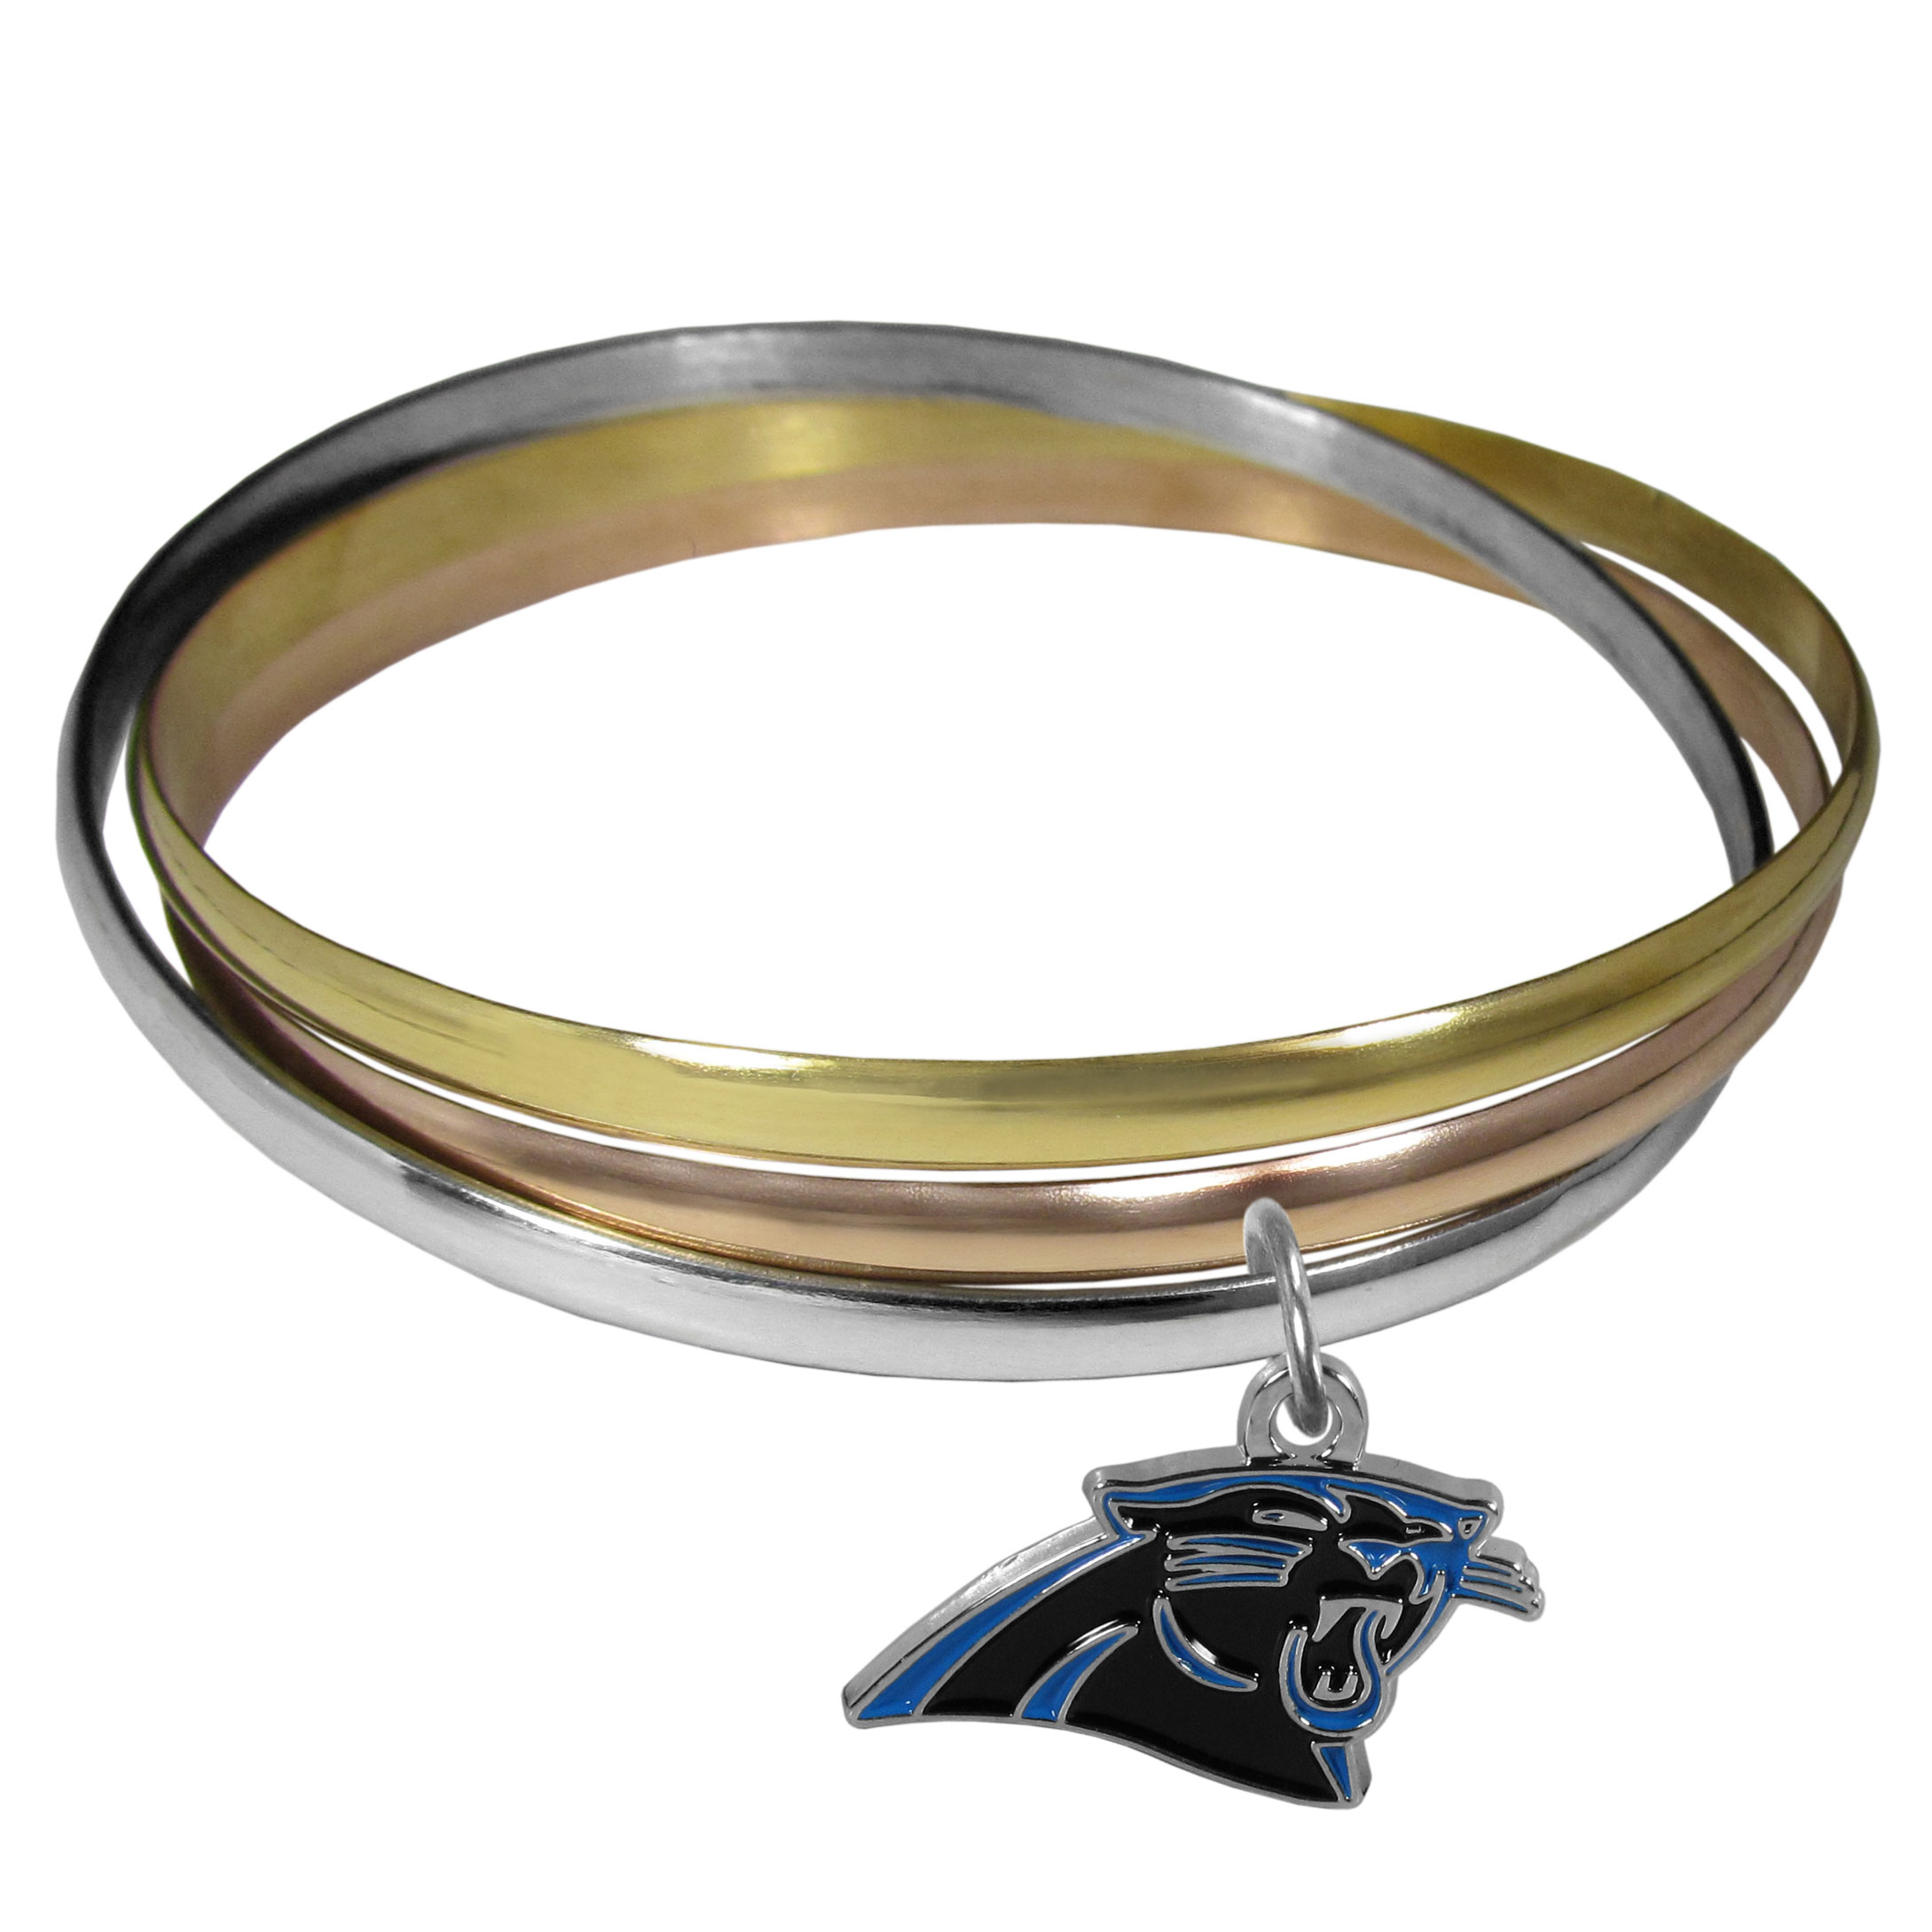 Carolina Panthers Tri-color Bangle Bracelet - These beautiful bangles come in a interlocking style and feature a fully cast Carolina Panthers charm with enameled team colors. The bracelet has a silver toned bangle, gold tone bangle and brass toned bangle.